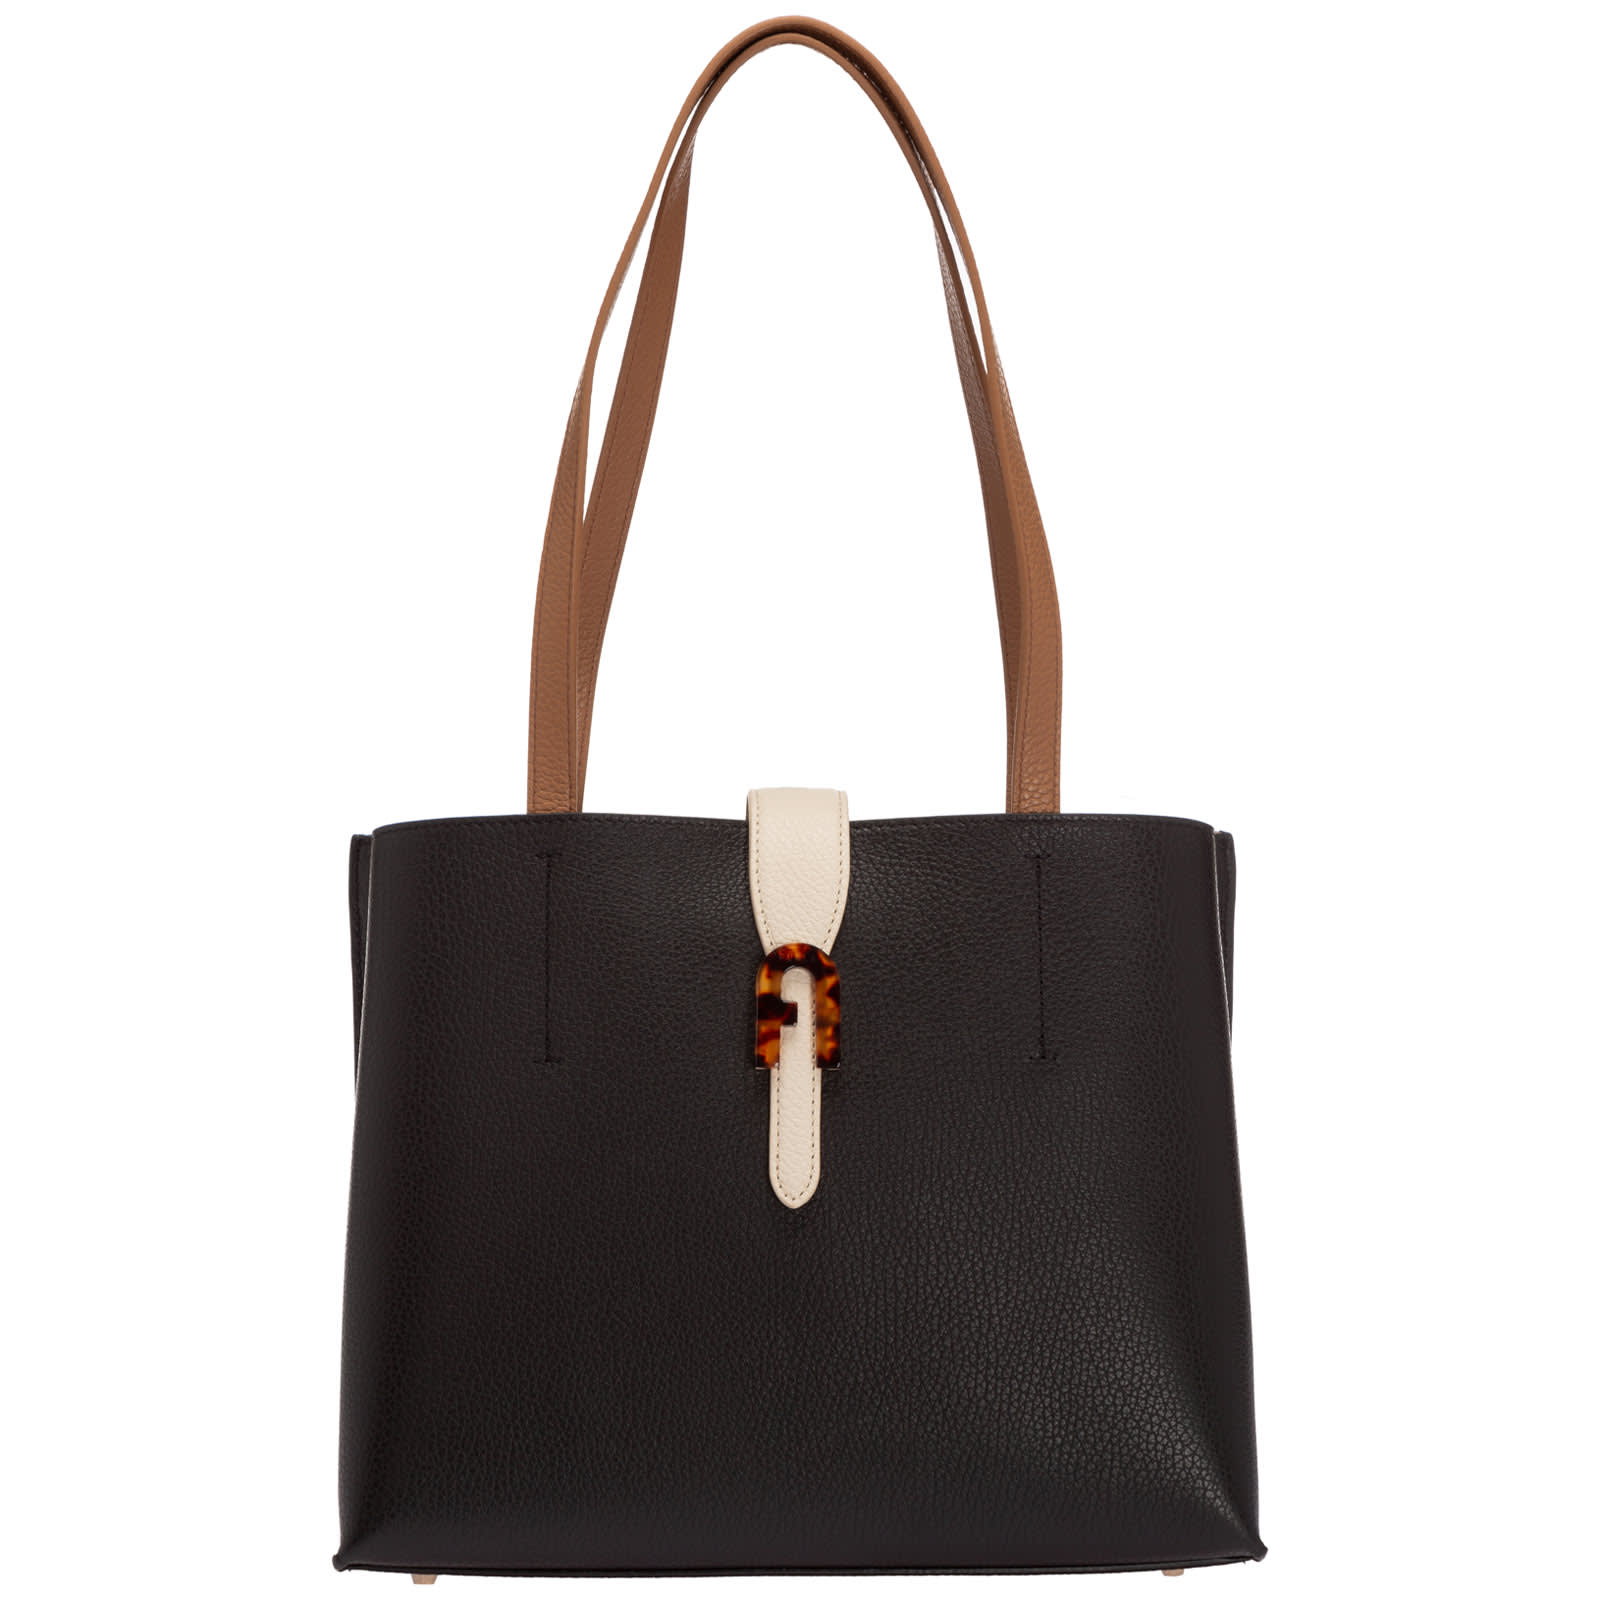 Furla Leathers SOFIA HANDBAGS